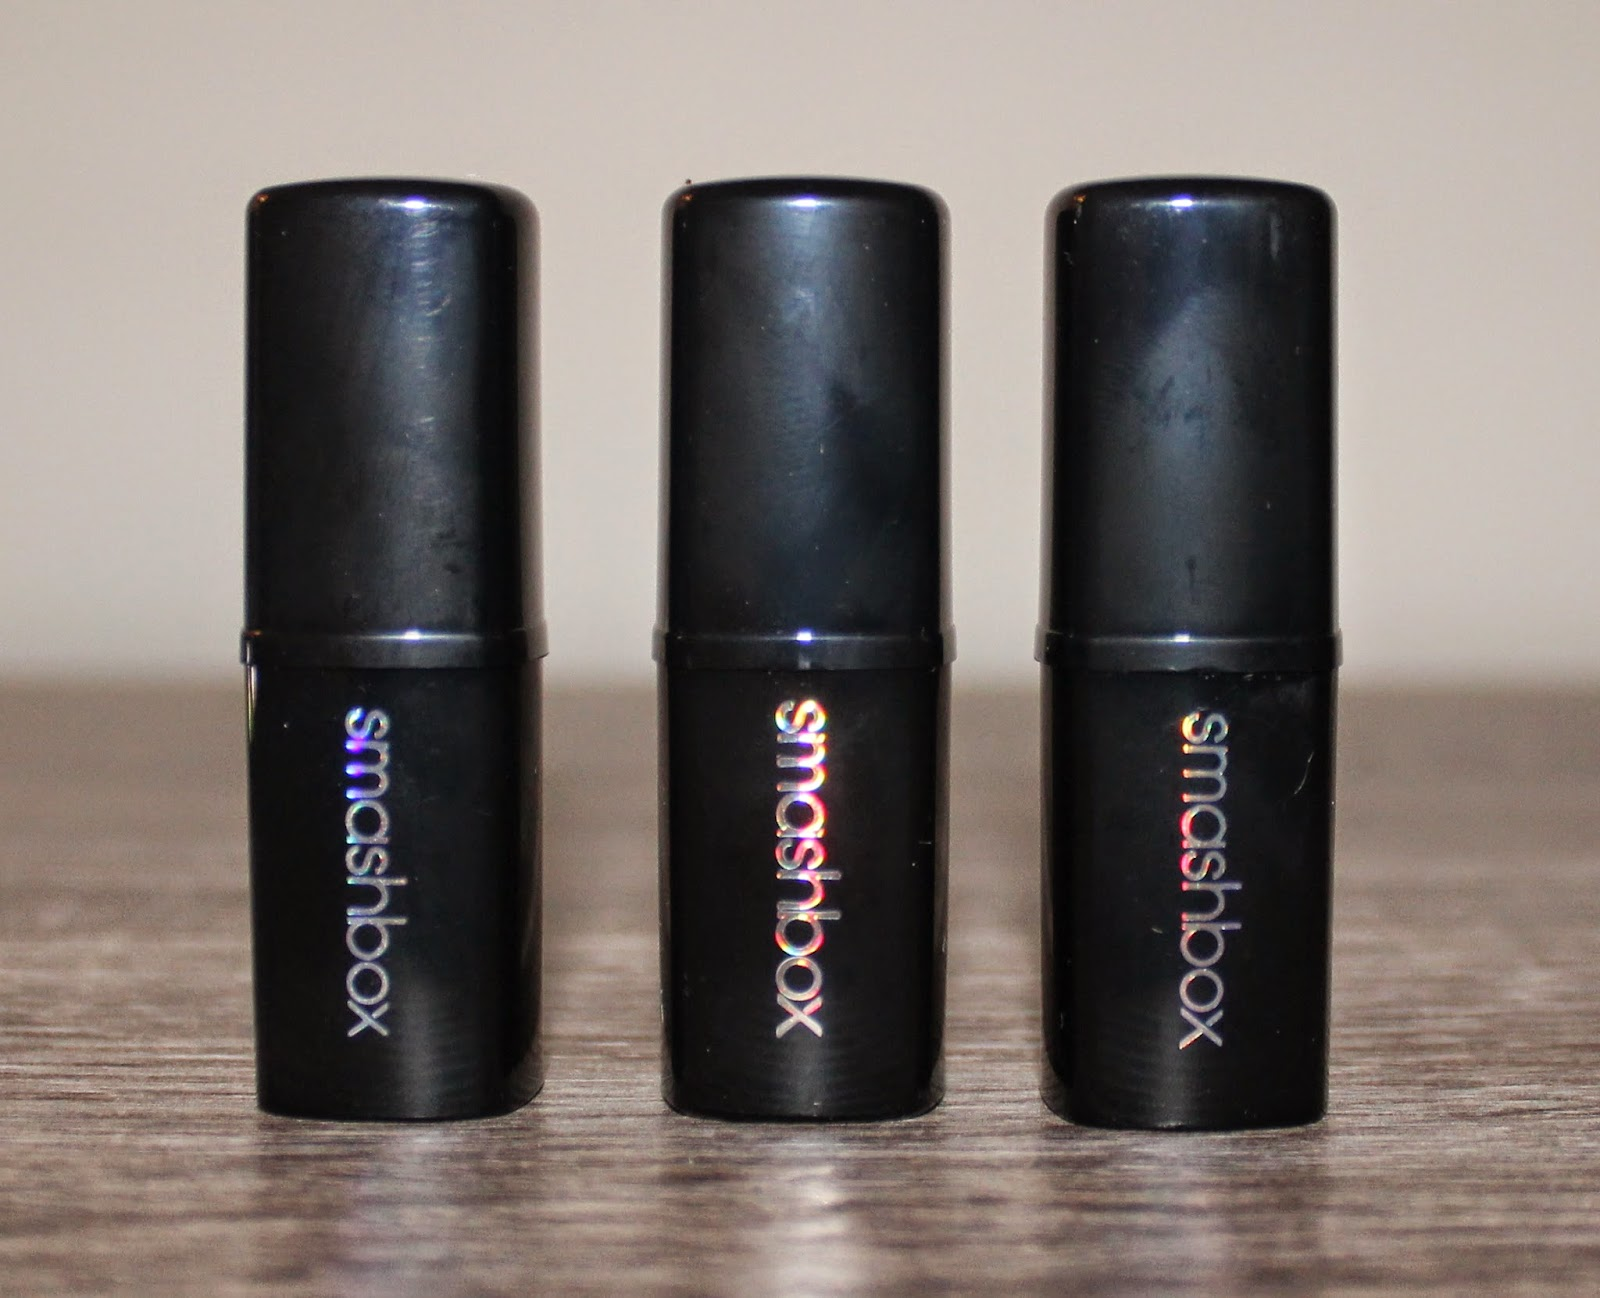 Smashbox On the Rocks Legendary Lipstick Trio